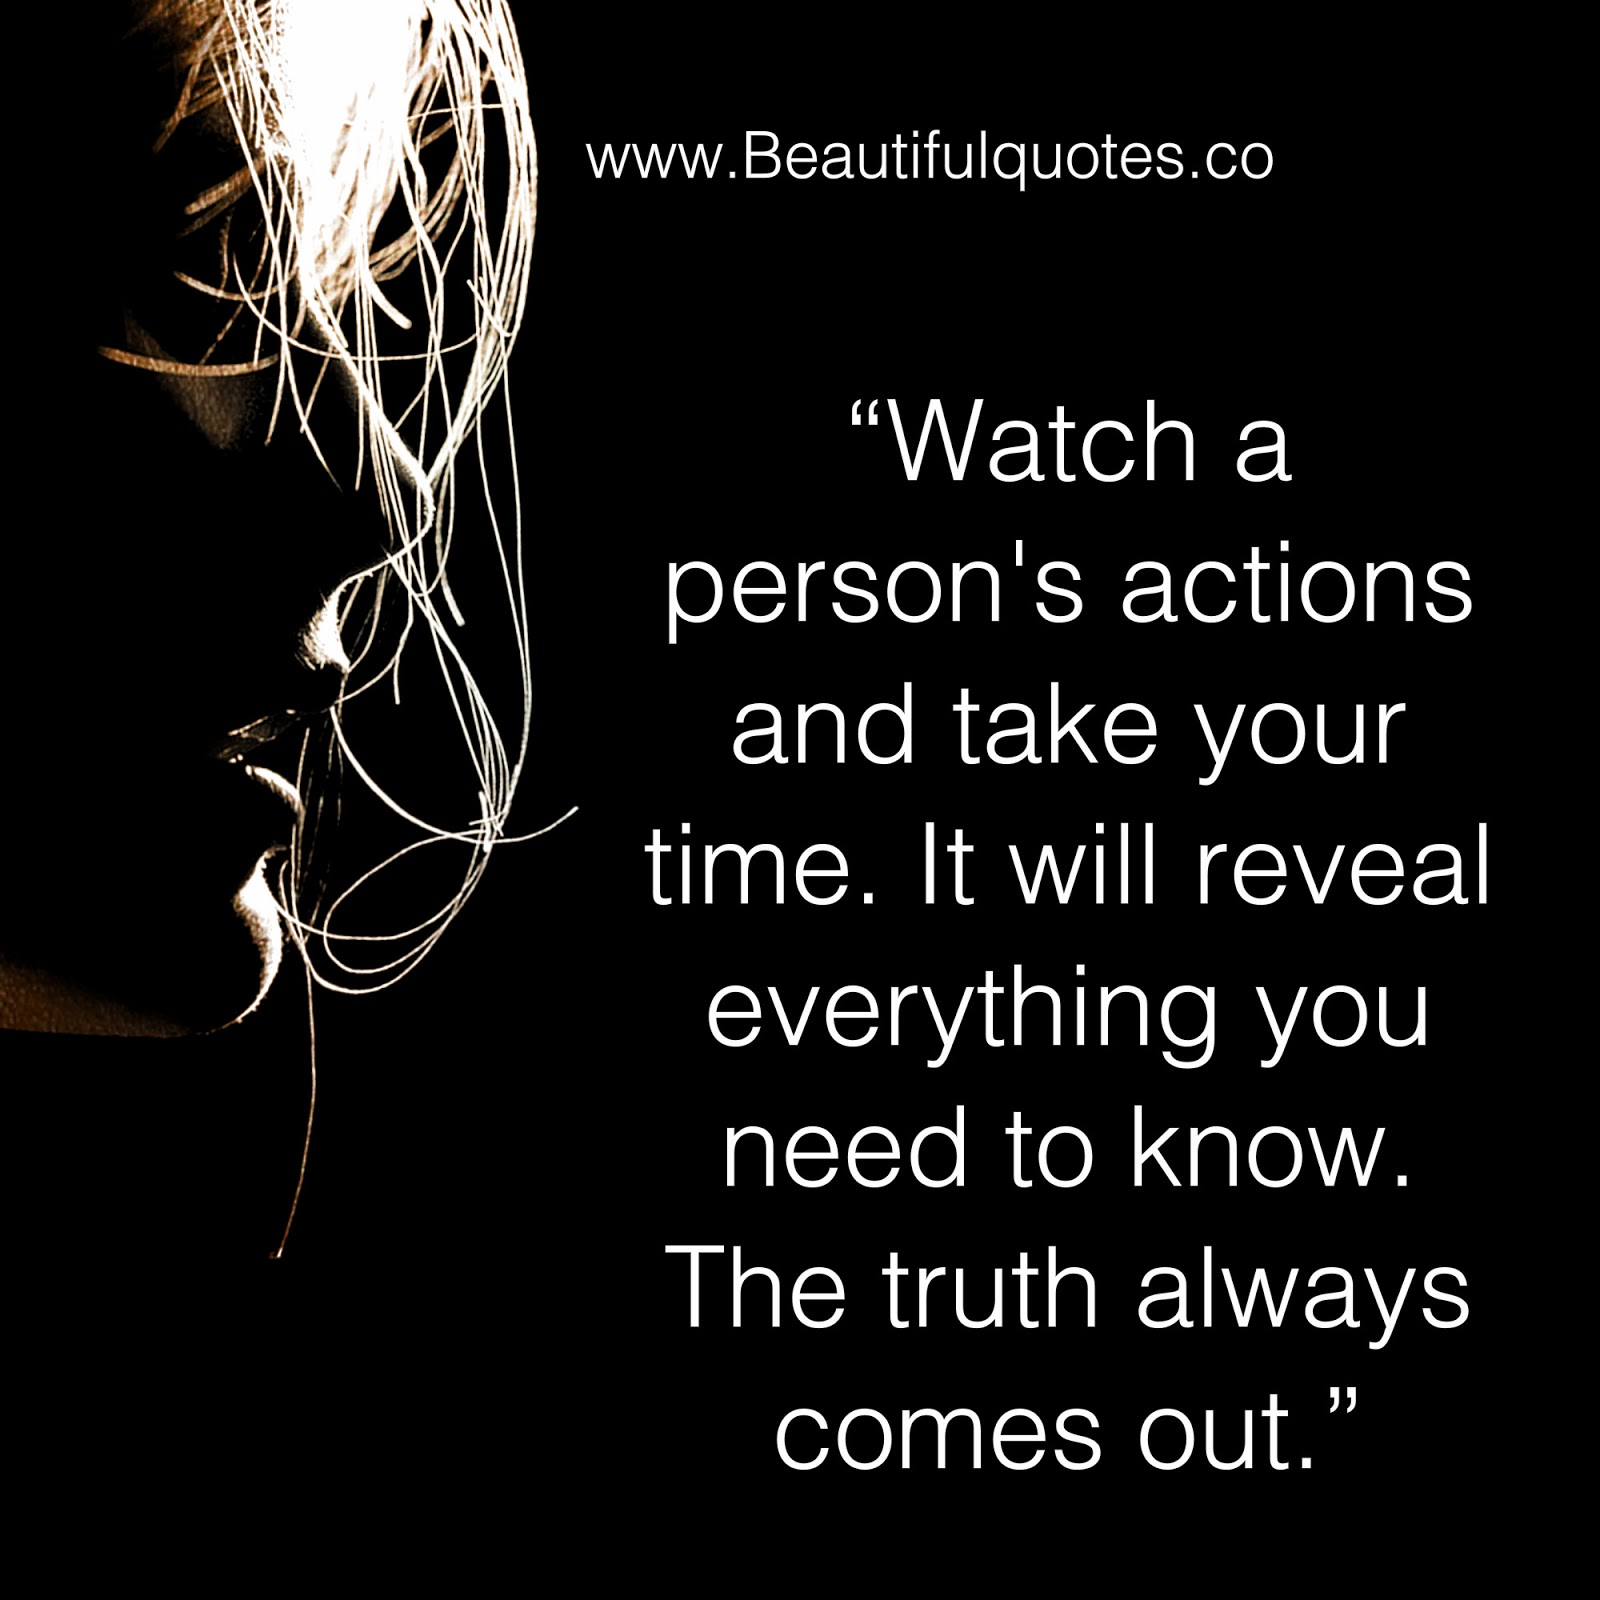 Watch Time Quotes: Beautiful Quotes: Watch A Person's Actions And Take Your Time